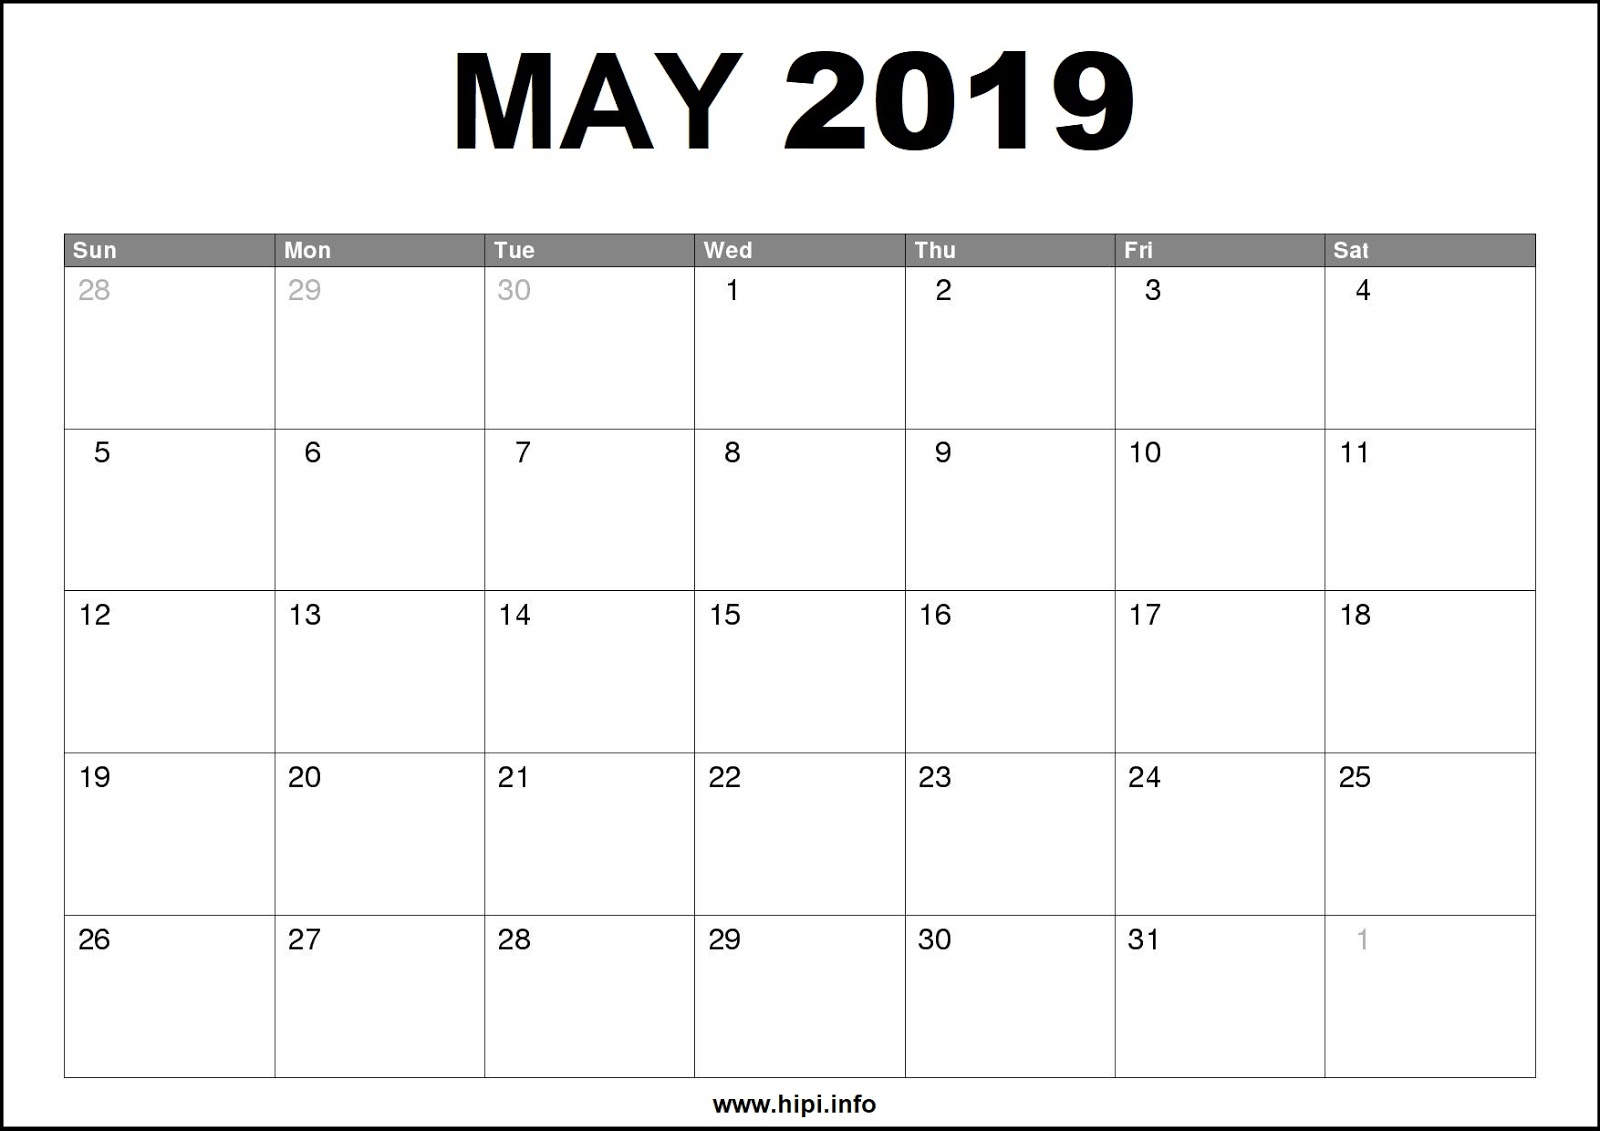 Twitter Headers Facebook Covers Wallpapers Calendars May 2019